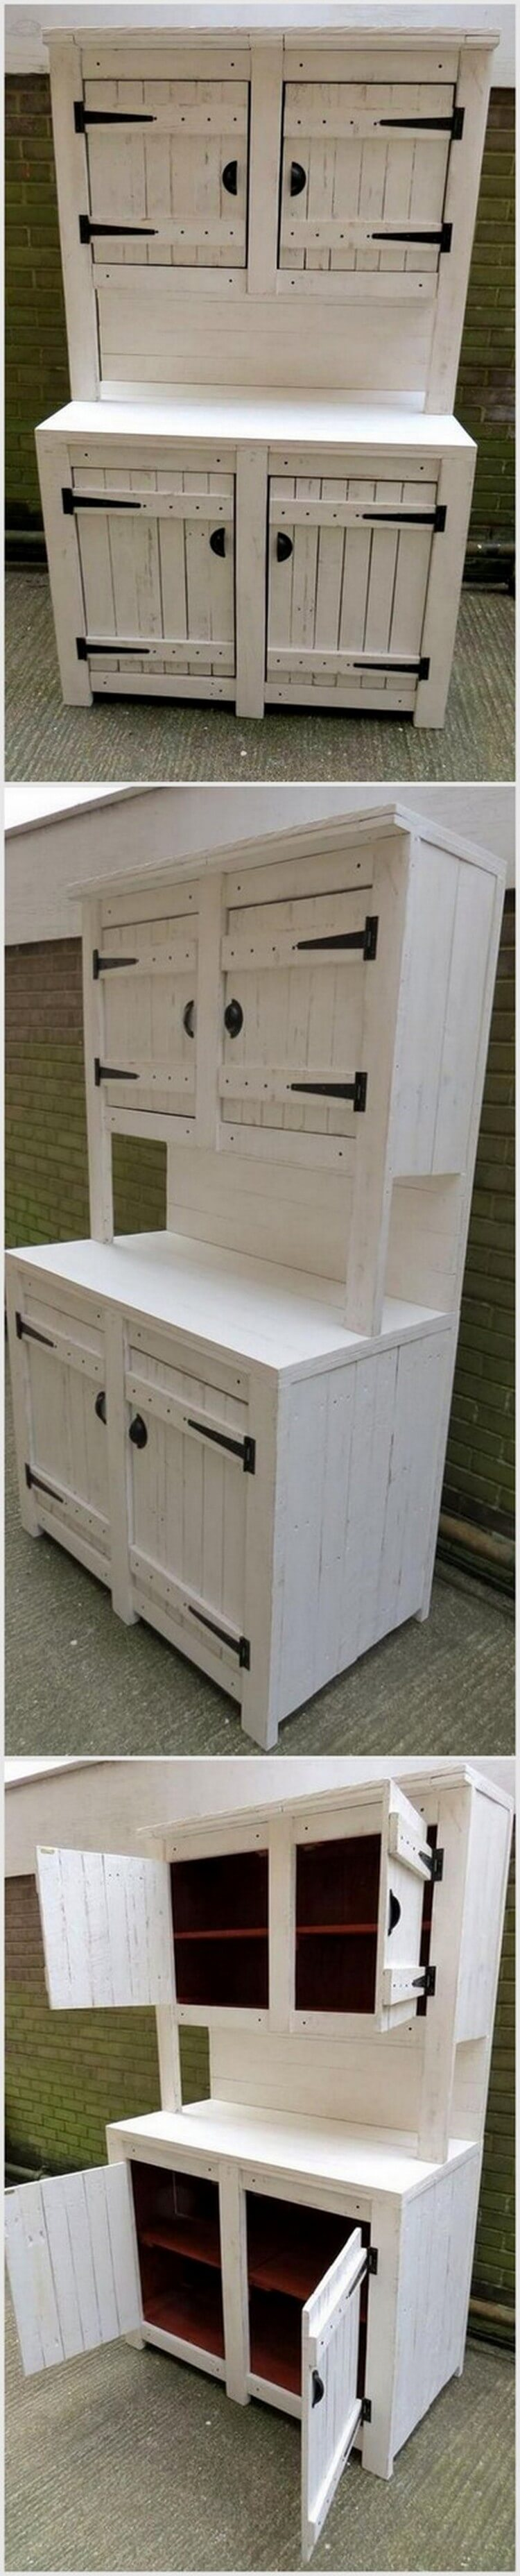 Attractive wood pallet recycling ideas projects